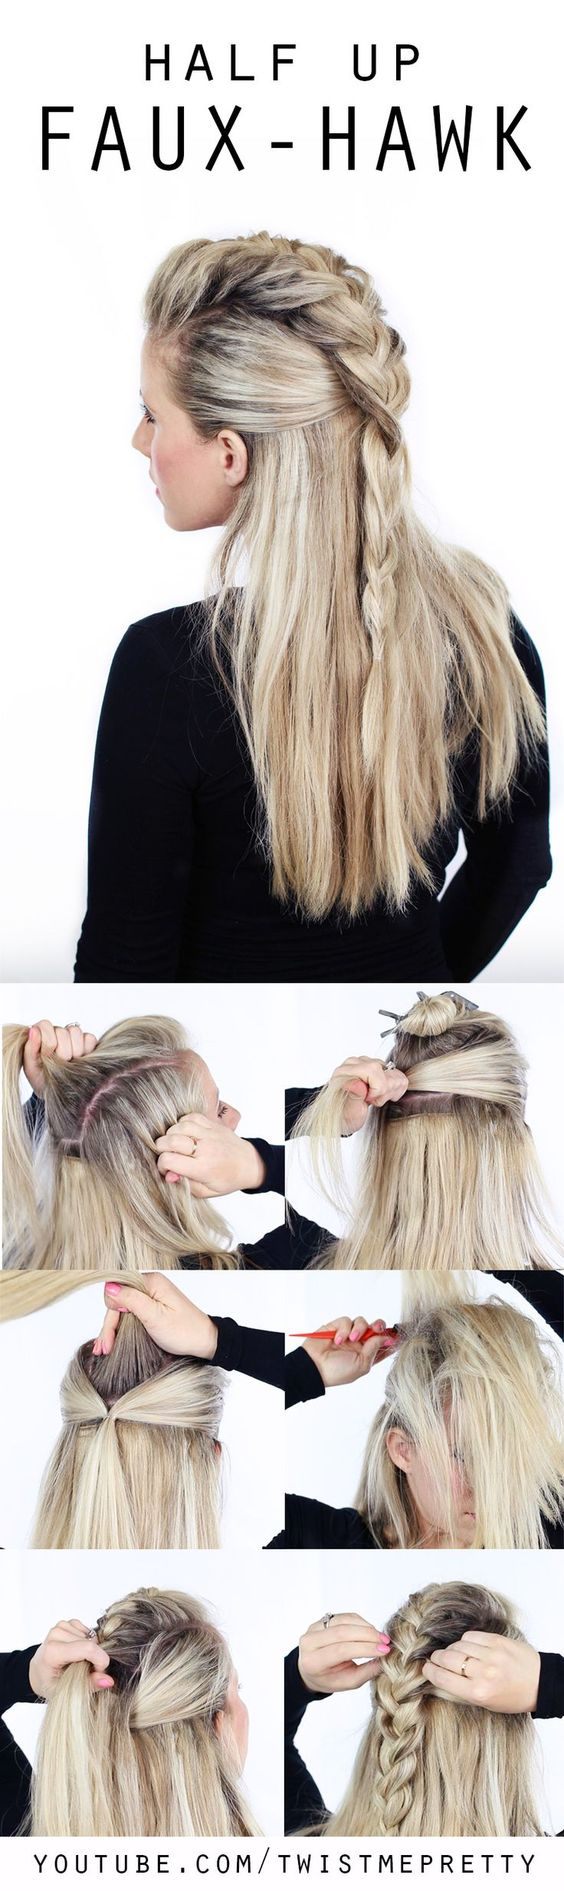 faux-hawk-inspired-half-up-hair via